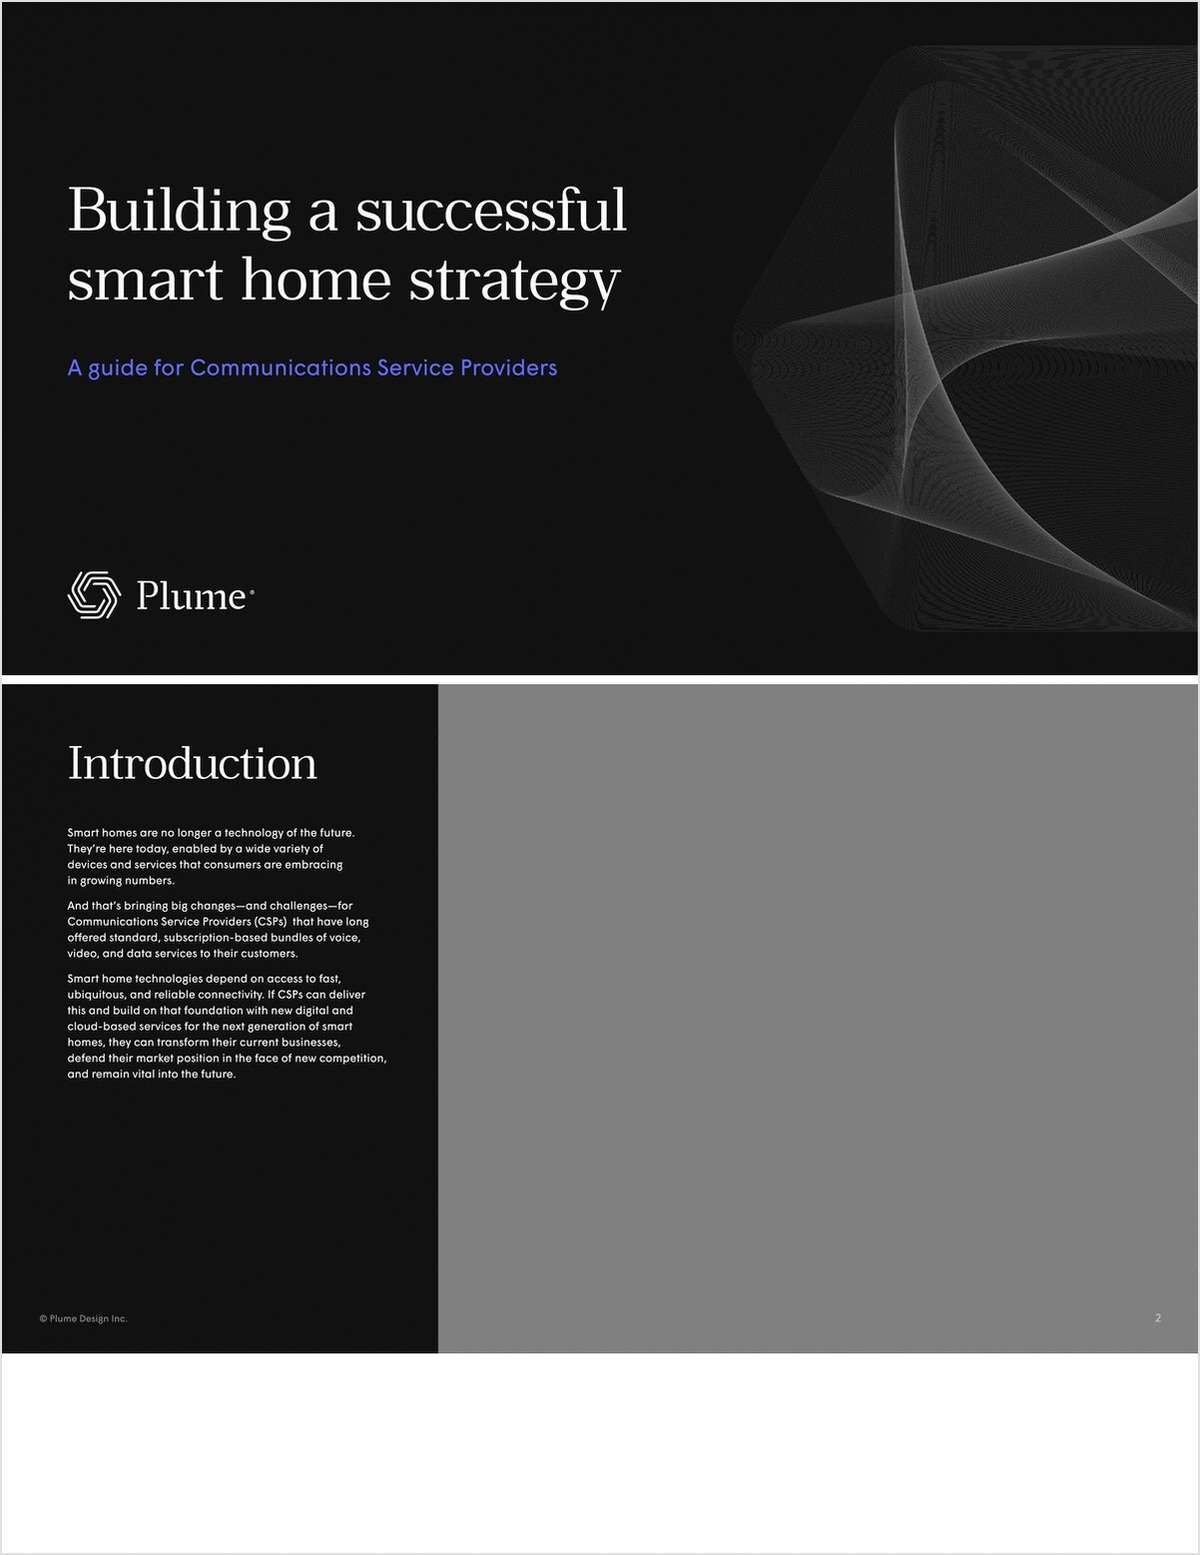 Building a successful smart home strategy. A guide for Communications Service Providers